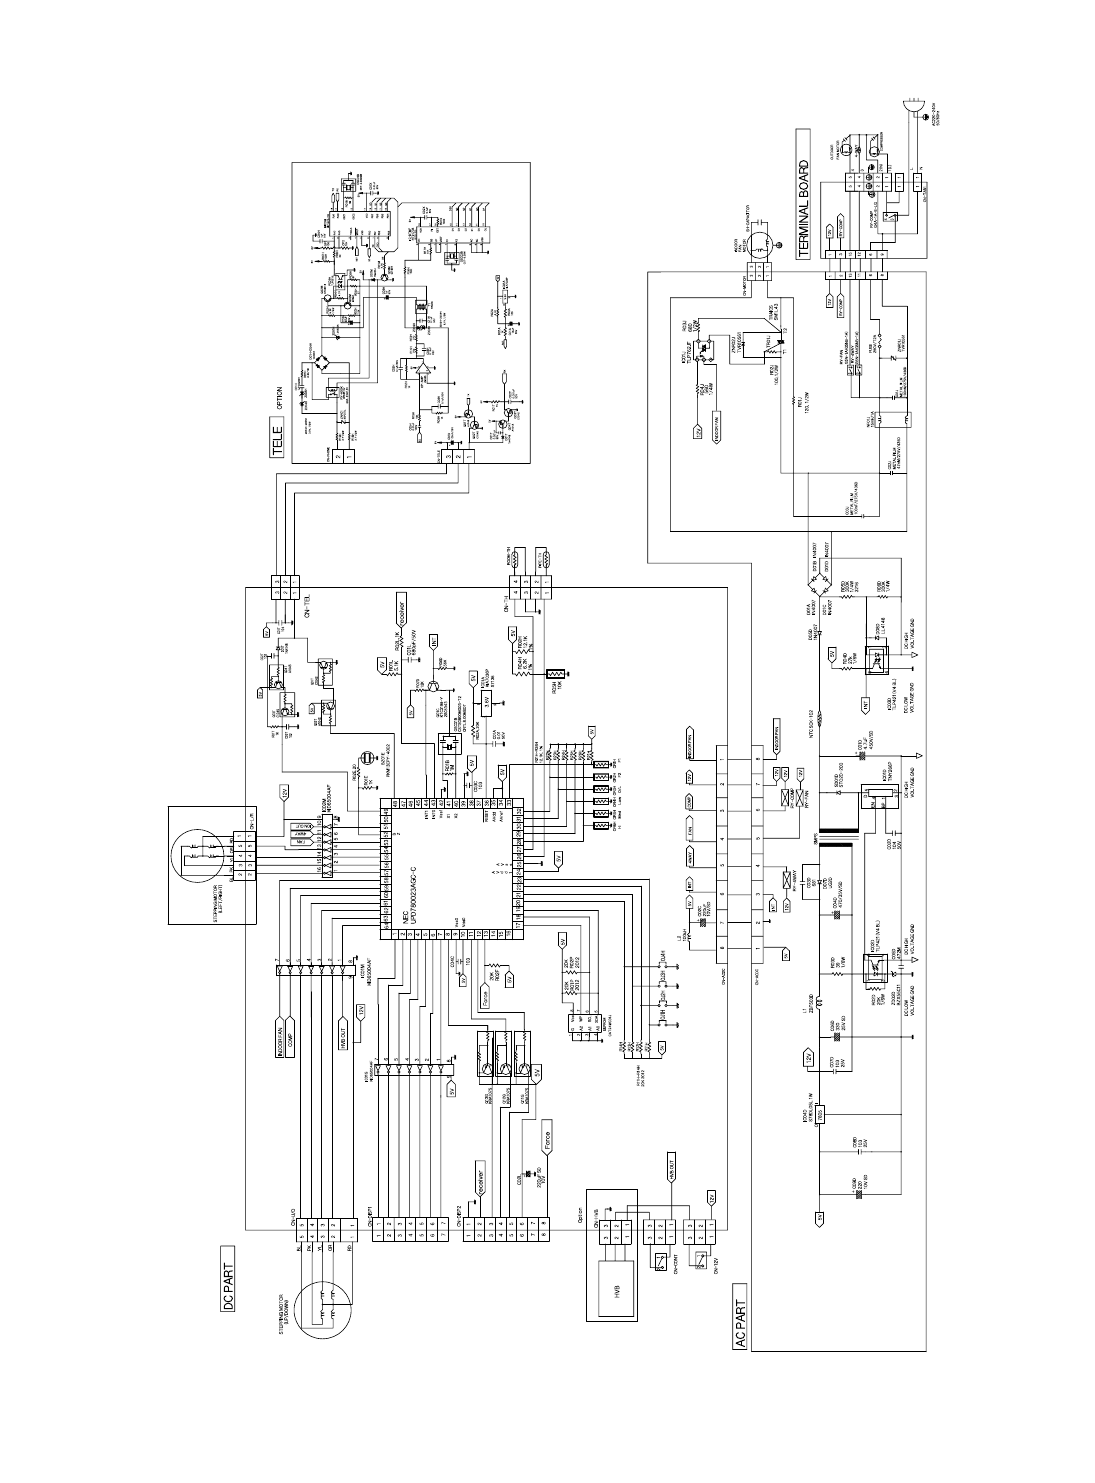 Page 61 of LG Electronics Air Conditioner LS-Q096AEL User